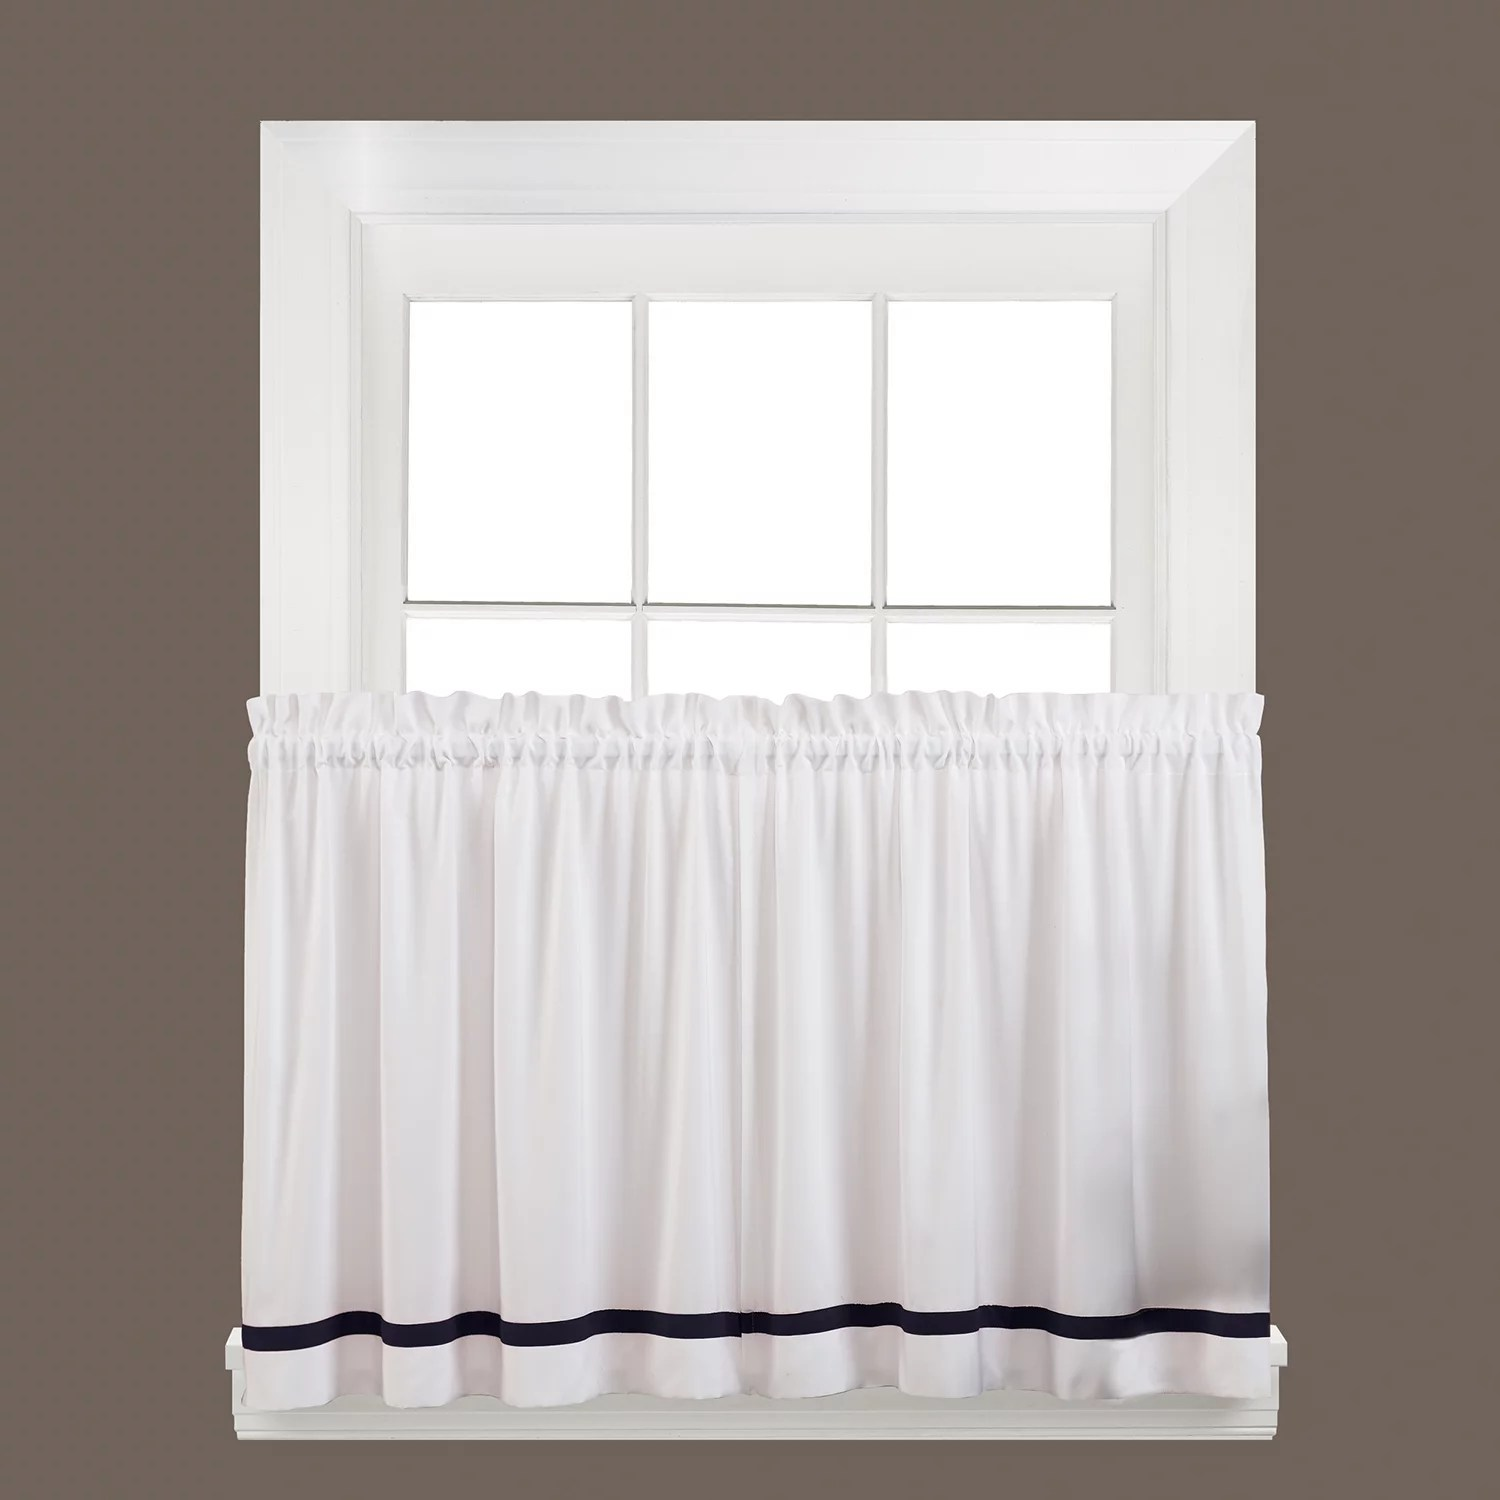 kitchen curtains kohls island stainless steel top saturday knight ltd drapes window treatments kate tier curtain set